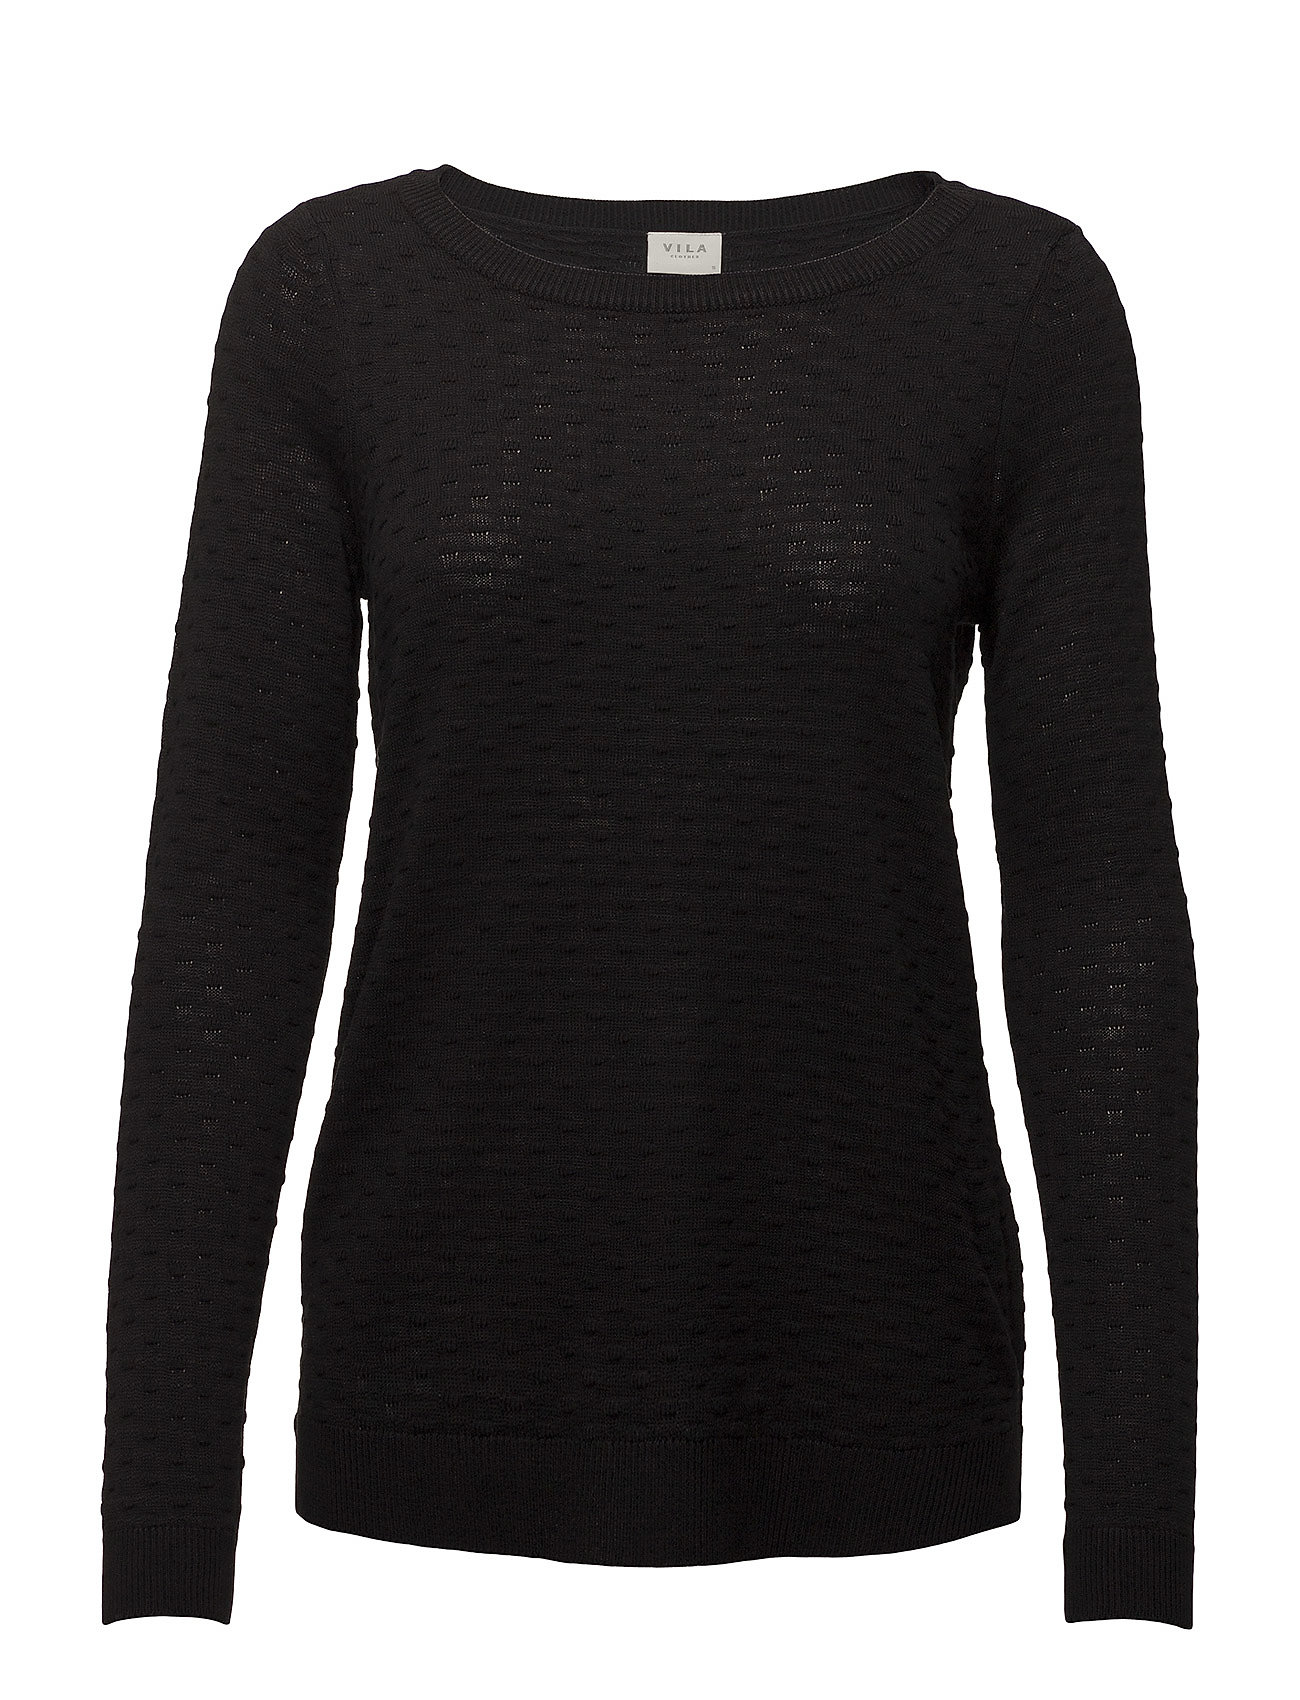 Vila VISARAFINA KNIT TOP - NOOS - BLACK